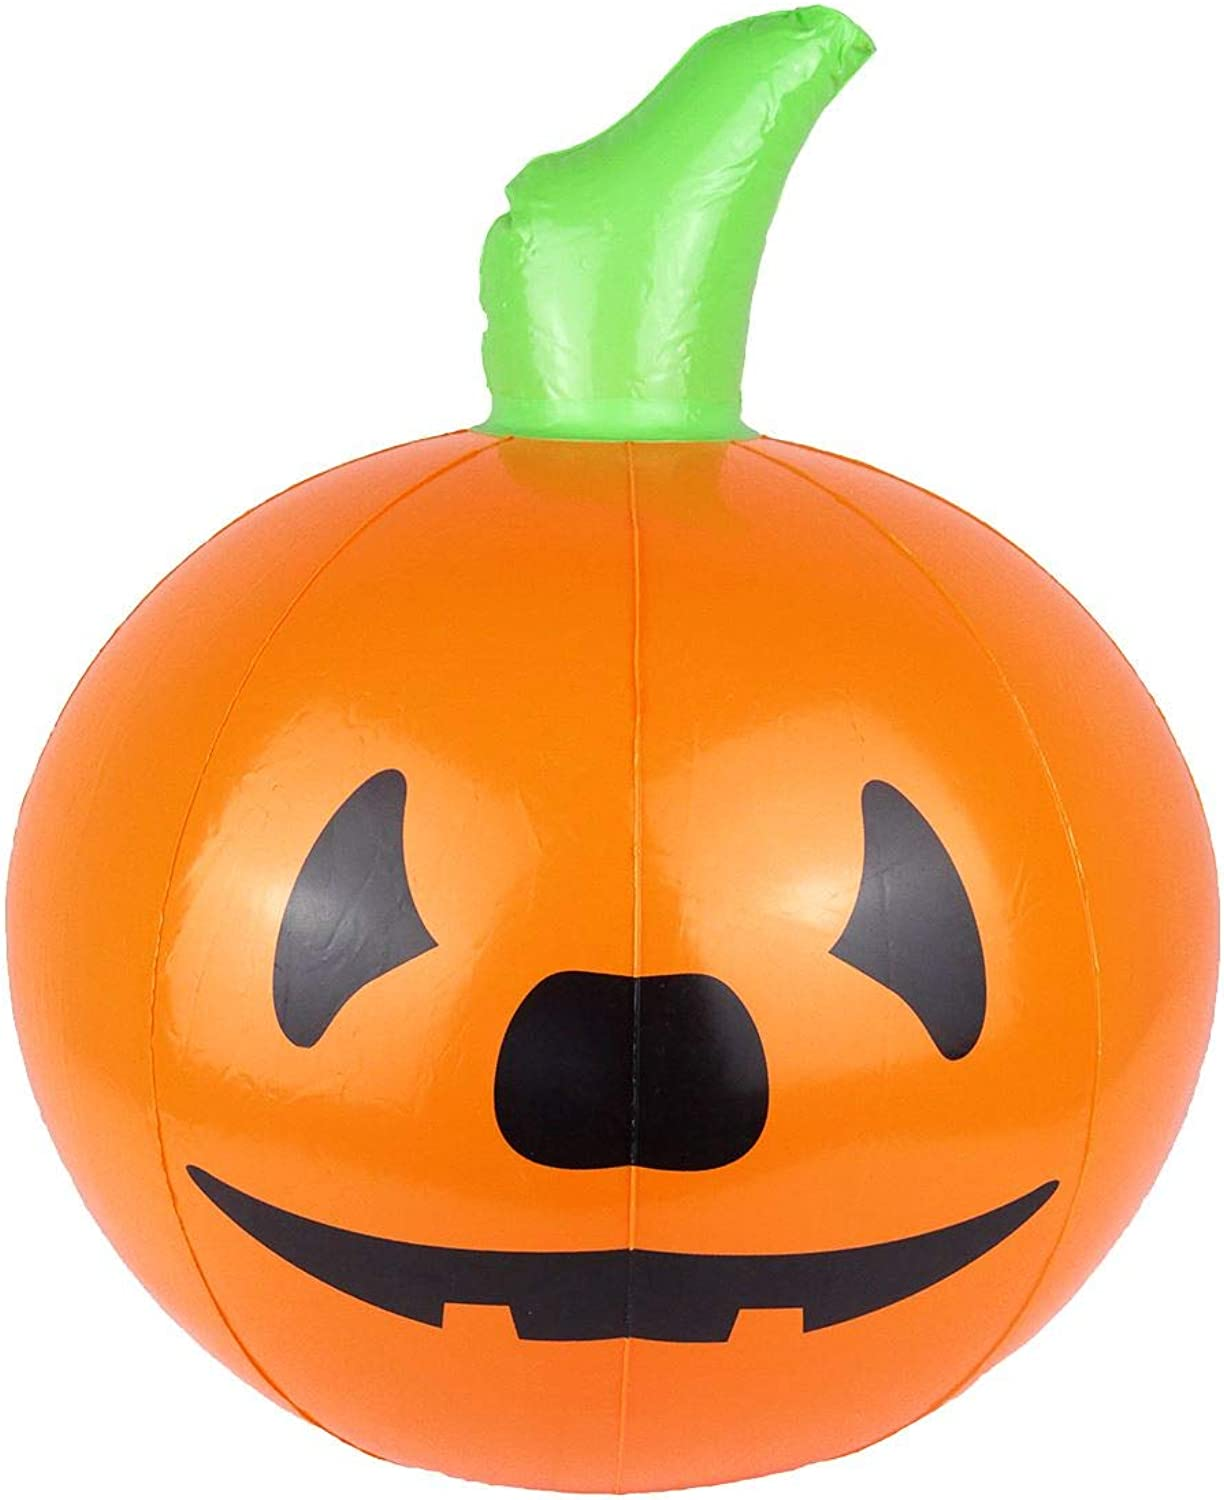 Rimi Hanger Adults Inflatable Toy Pumpkin 35cm Unisex Halloween Party Decoration Accessories One Size (Pack of 12)